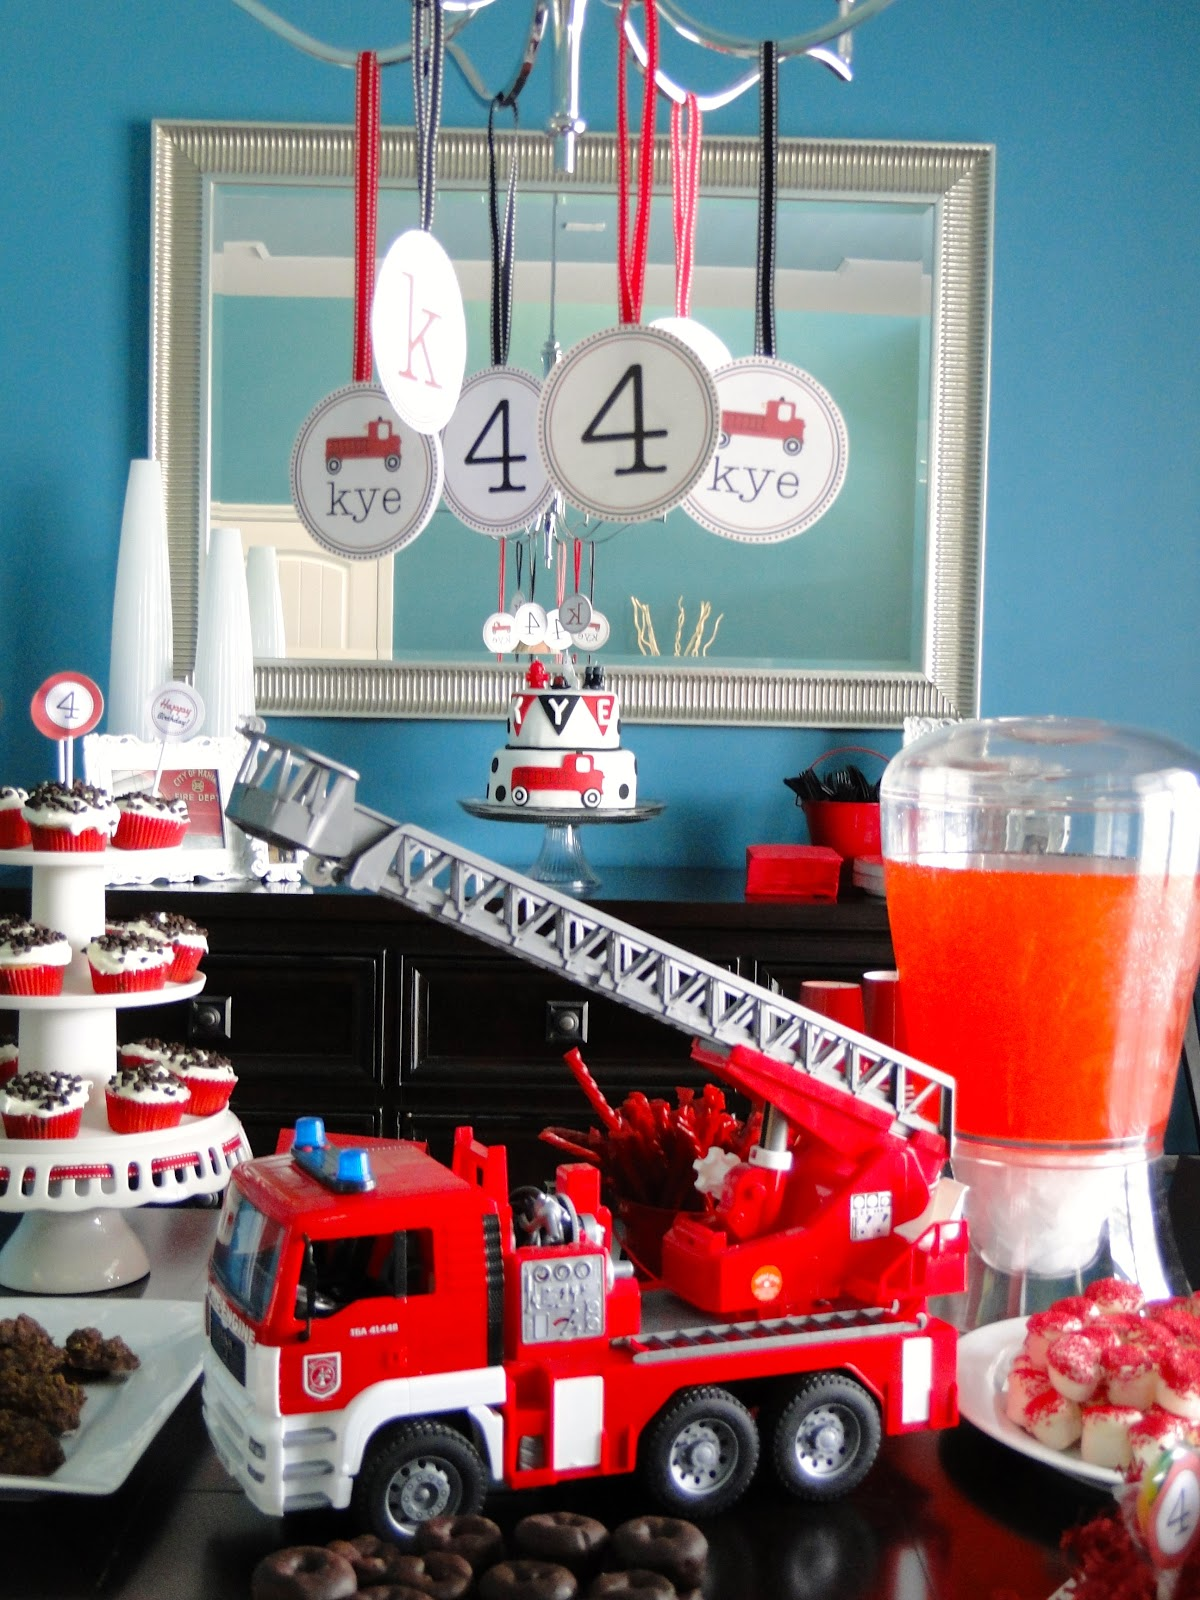 The journey of parenthood firetruck party decorations